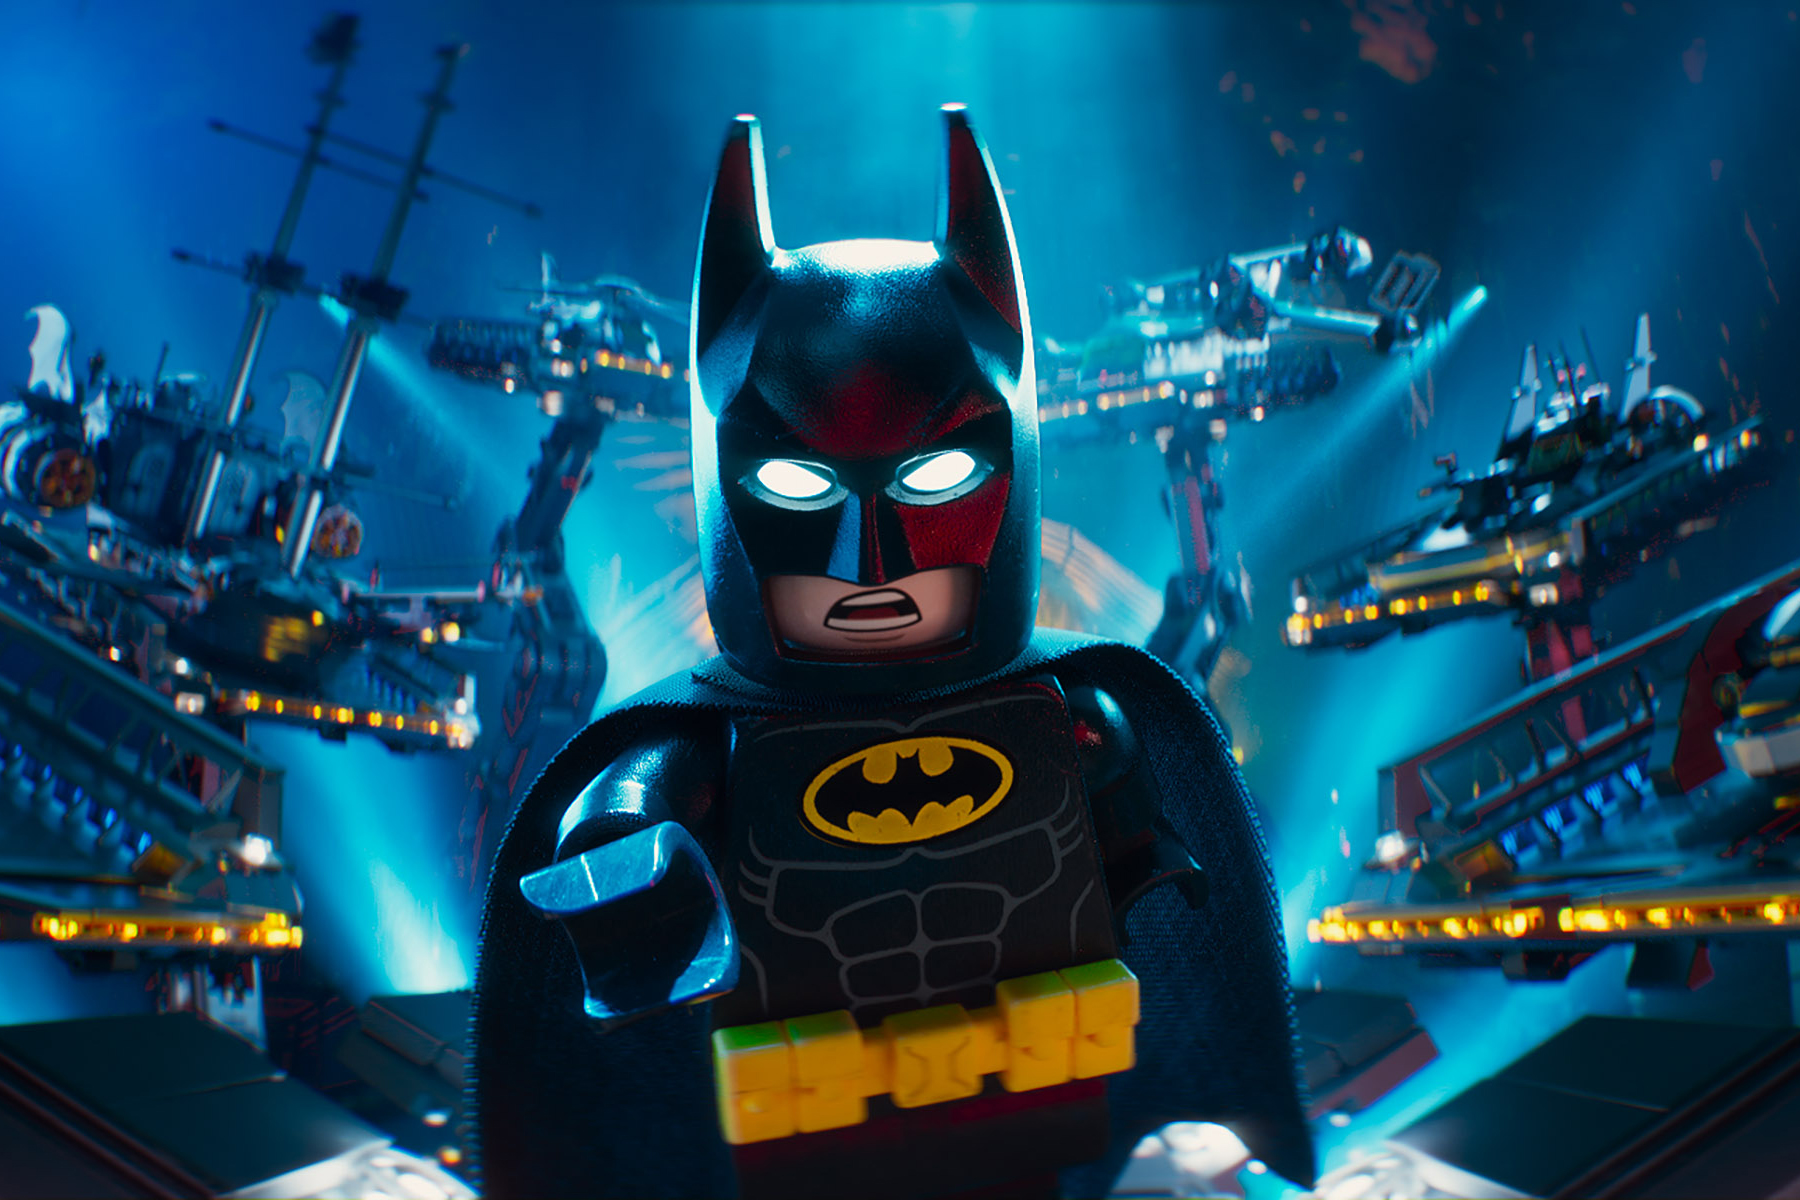 Will Arnett voices Bruce Wayne/Batman in <i>The Lego Batman Movie</i>, a 3D-animated take on the DC superhero and a spin-off of 2014's <i>The Lego Movie</i>.